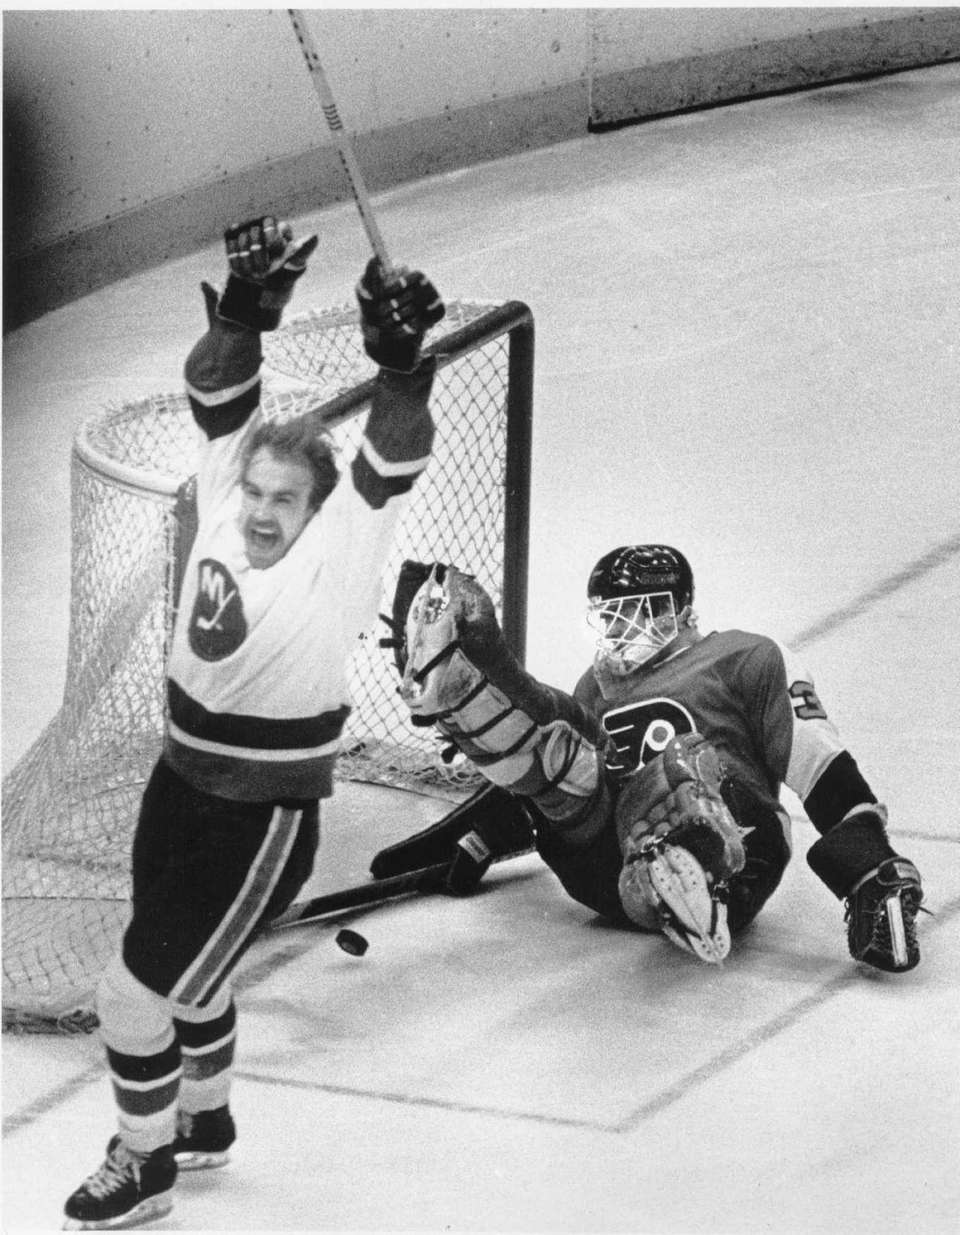 1. Nystrom's Goal May 24, 1980: The